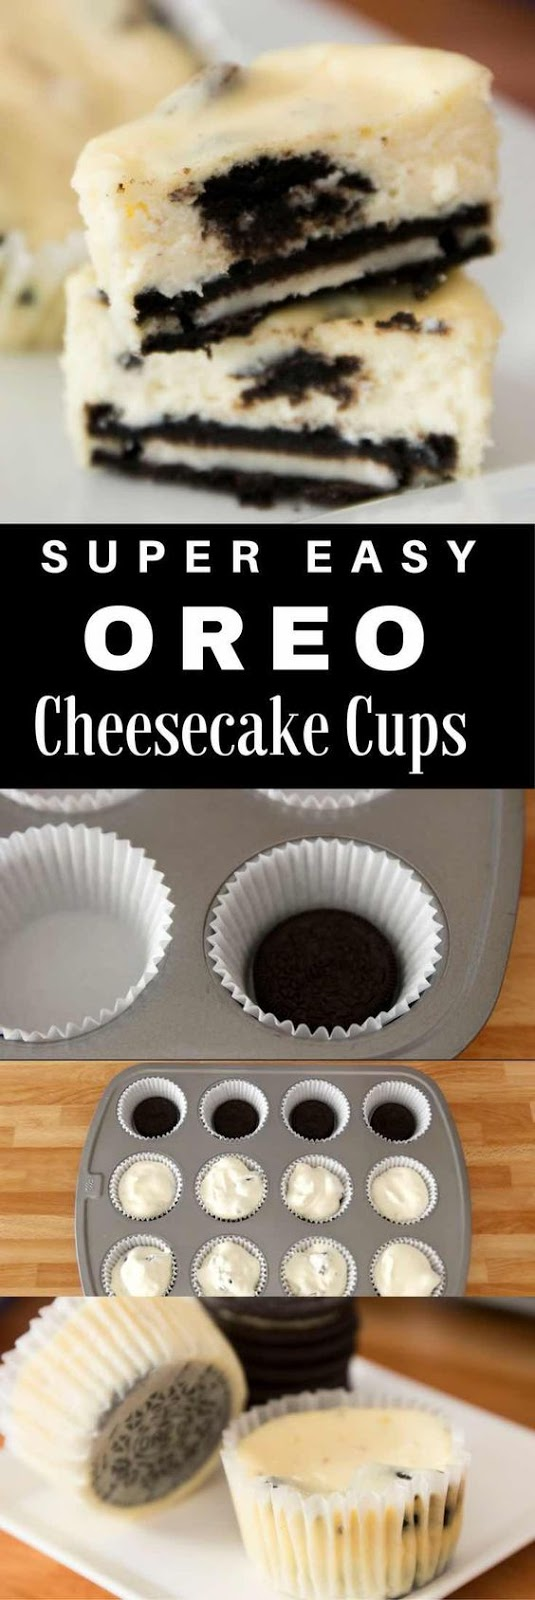 Mini Oreo Cheesecake Cupcakes